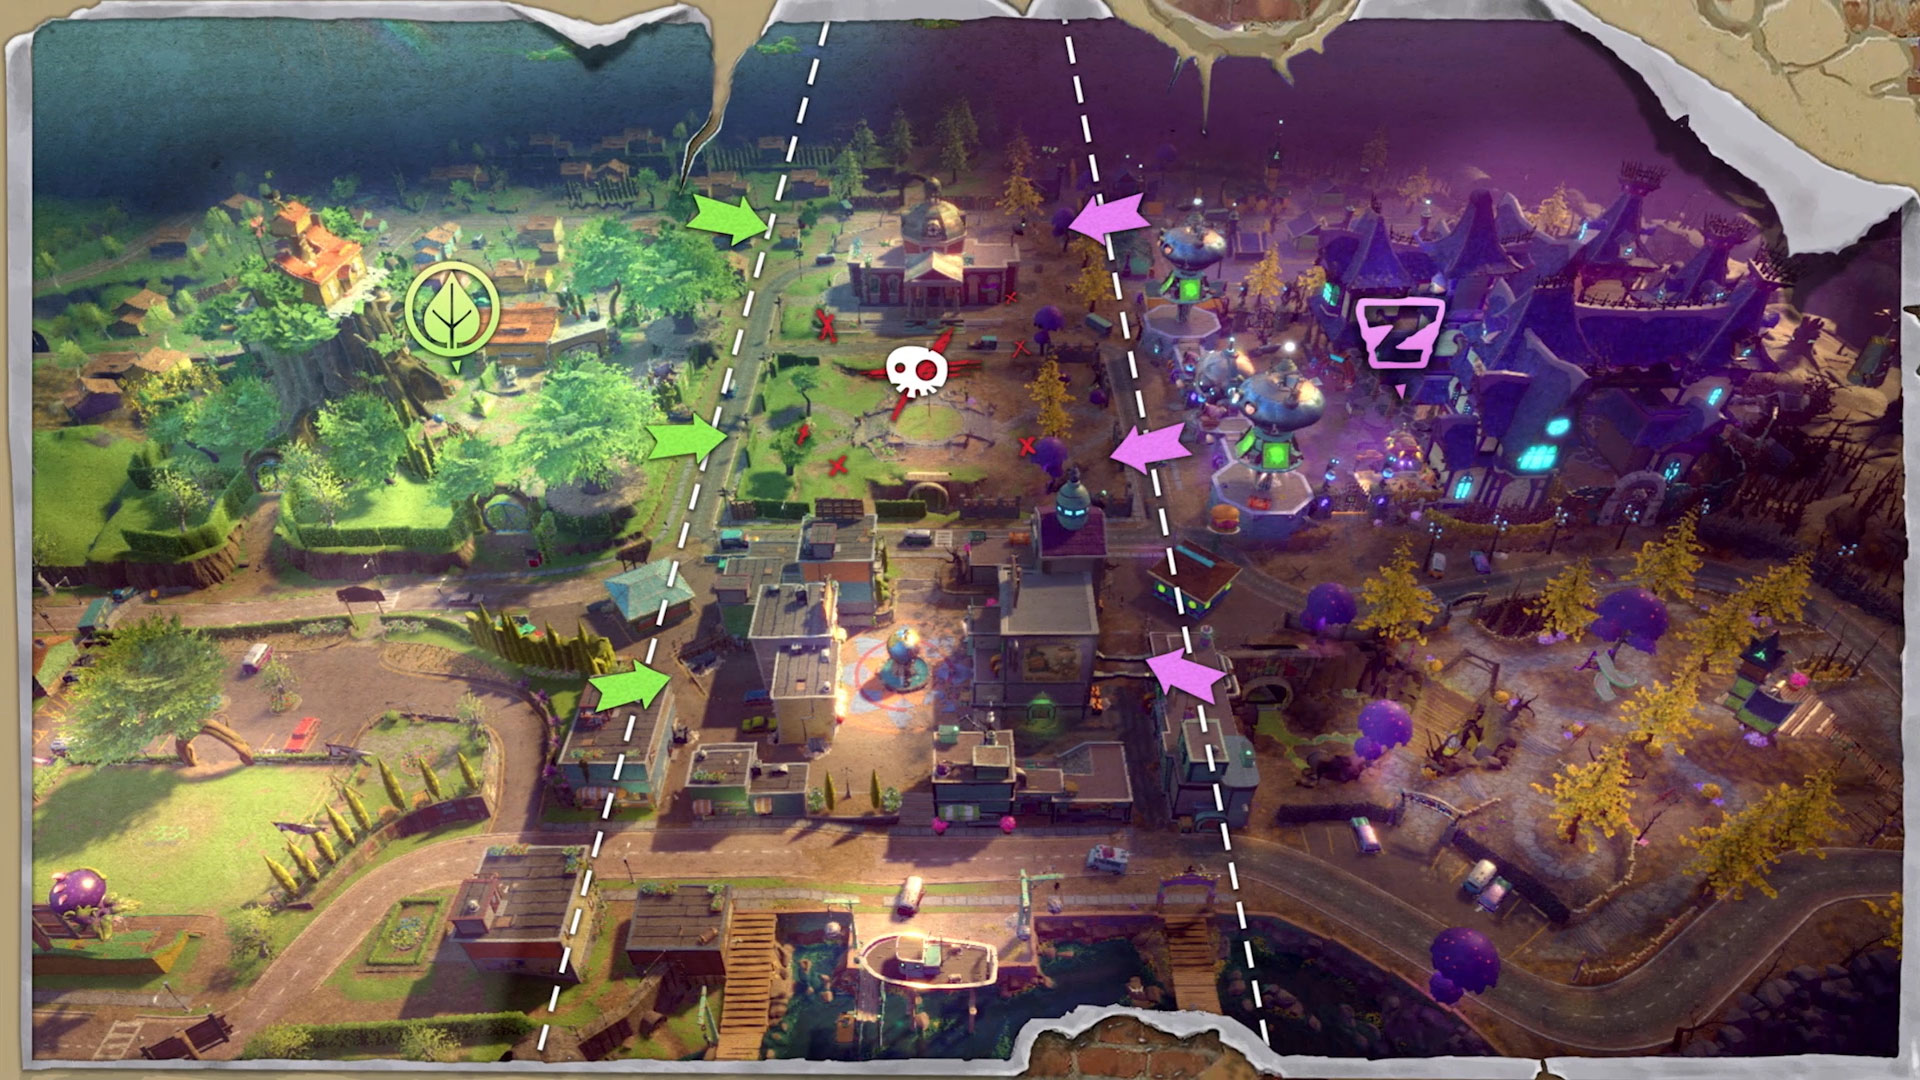 Plants vs Zombies Garden Warfare 2 Beta: 5 Things to Know